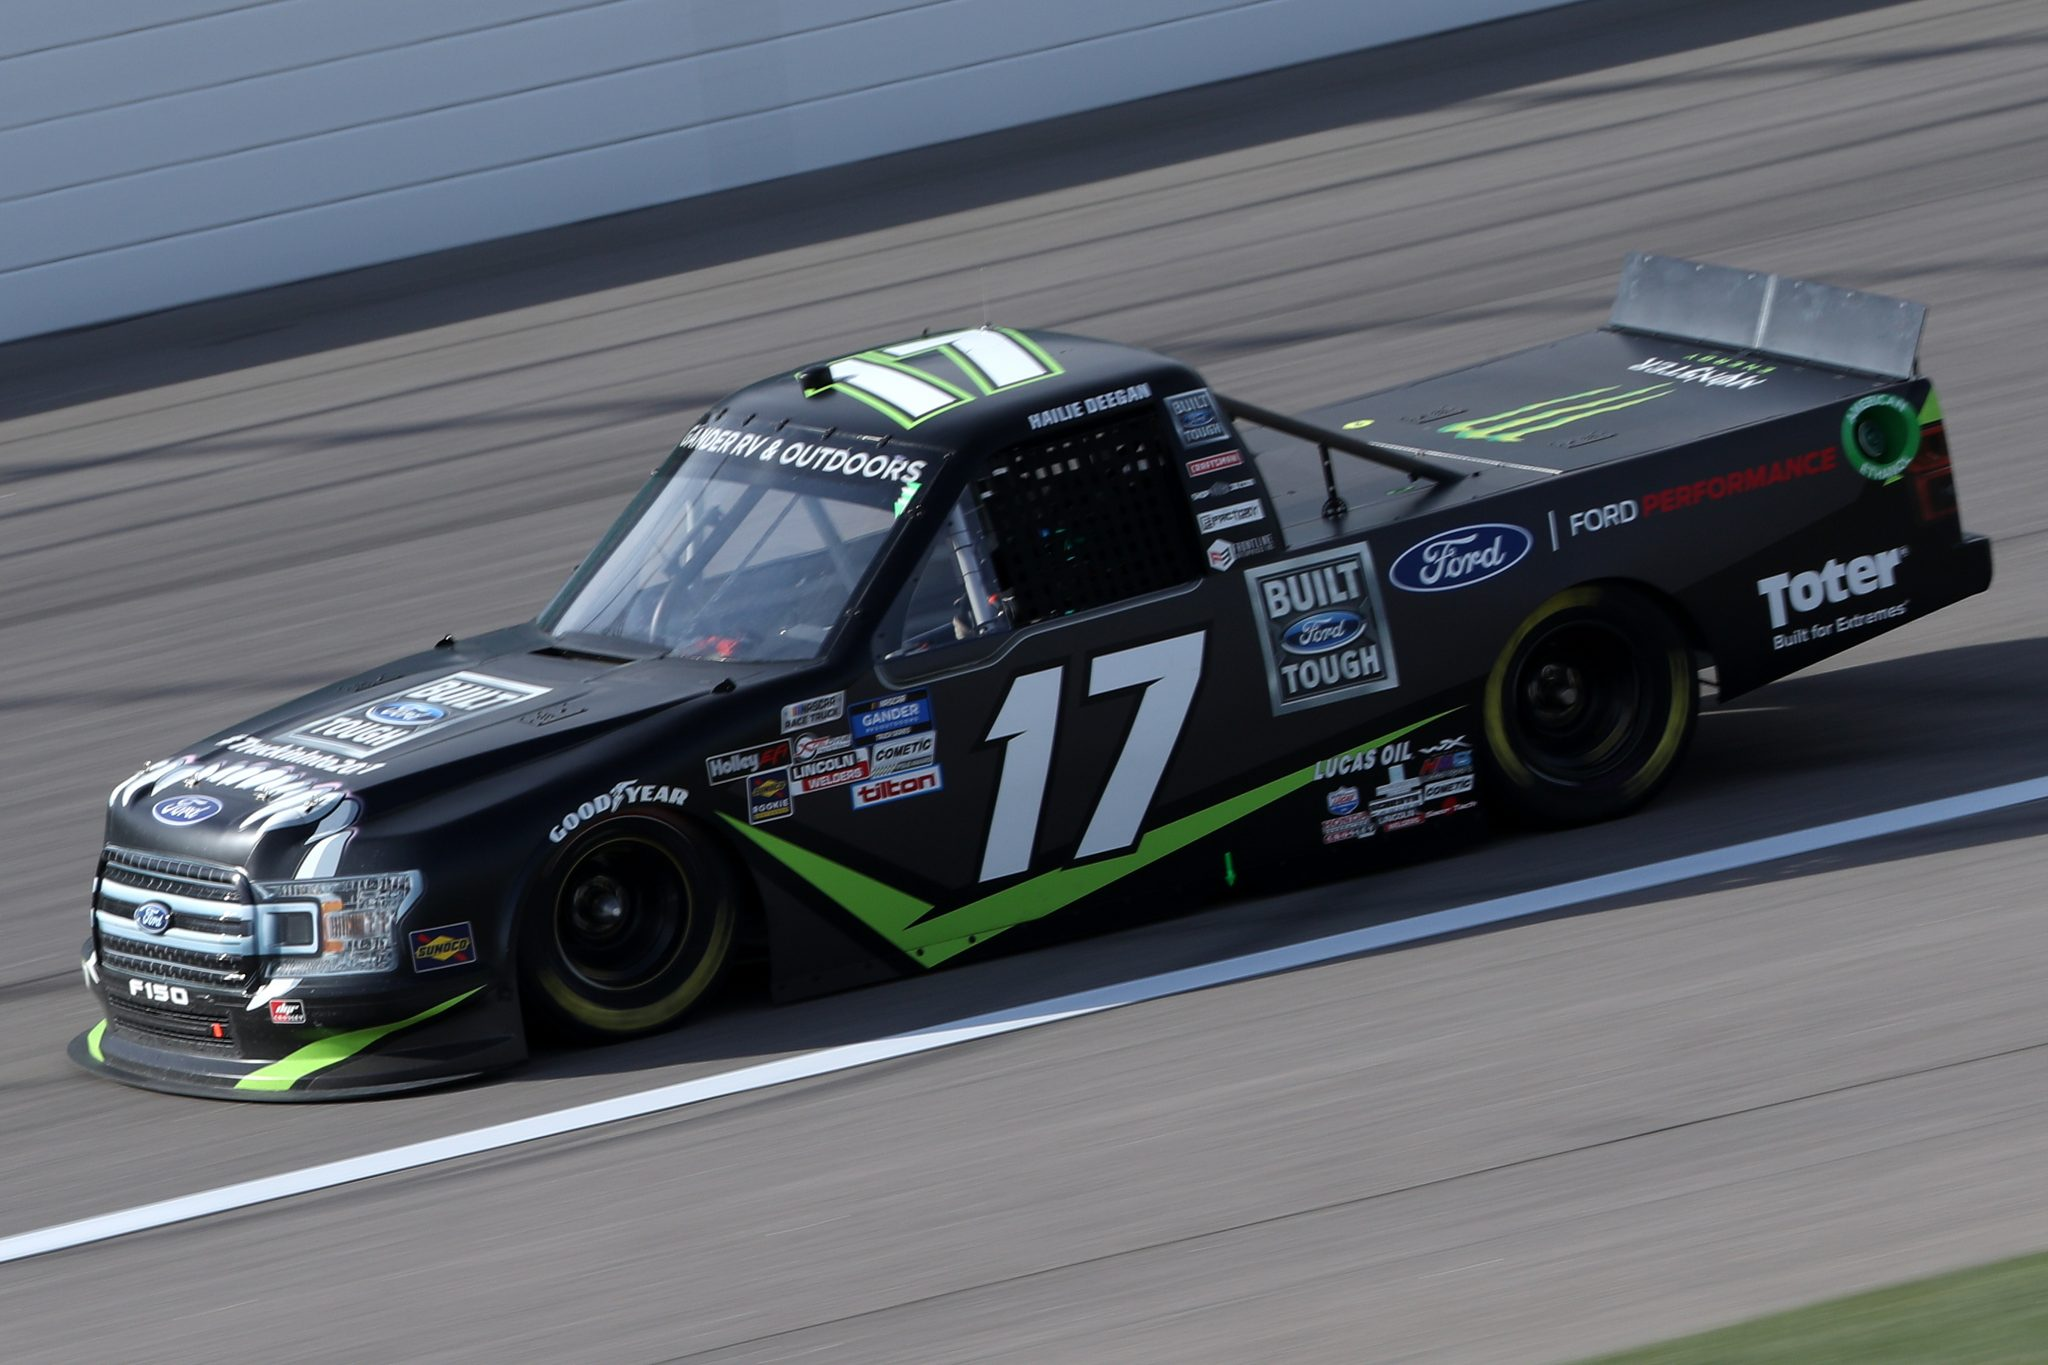 KANSAS CITY, KANSAS - OCTOBER 17: Hailie Deegan, driver of the #17 FORD Ford, drives during the NASCAR Gander RV & Outdoors Truck Series Clean Harbors 200at Kansas Speedway on October 17, 2020 in Kansas City, Kansas. (Photo by Chris Graythen/Getty Images) | Getty Images